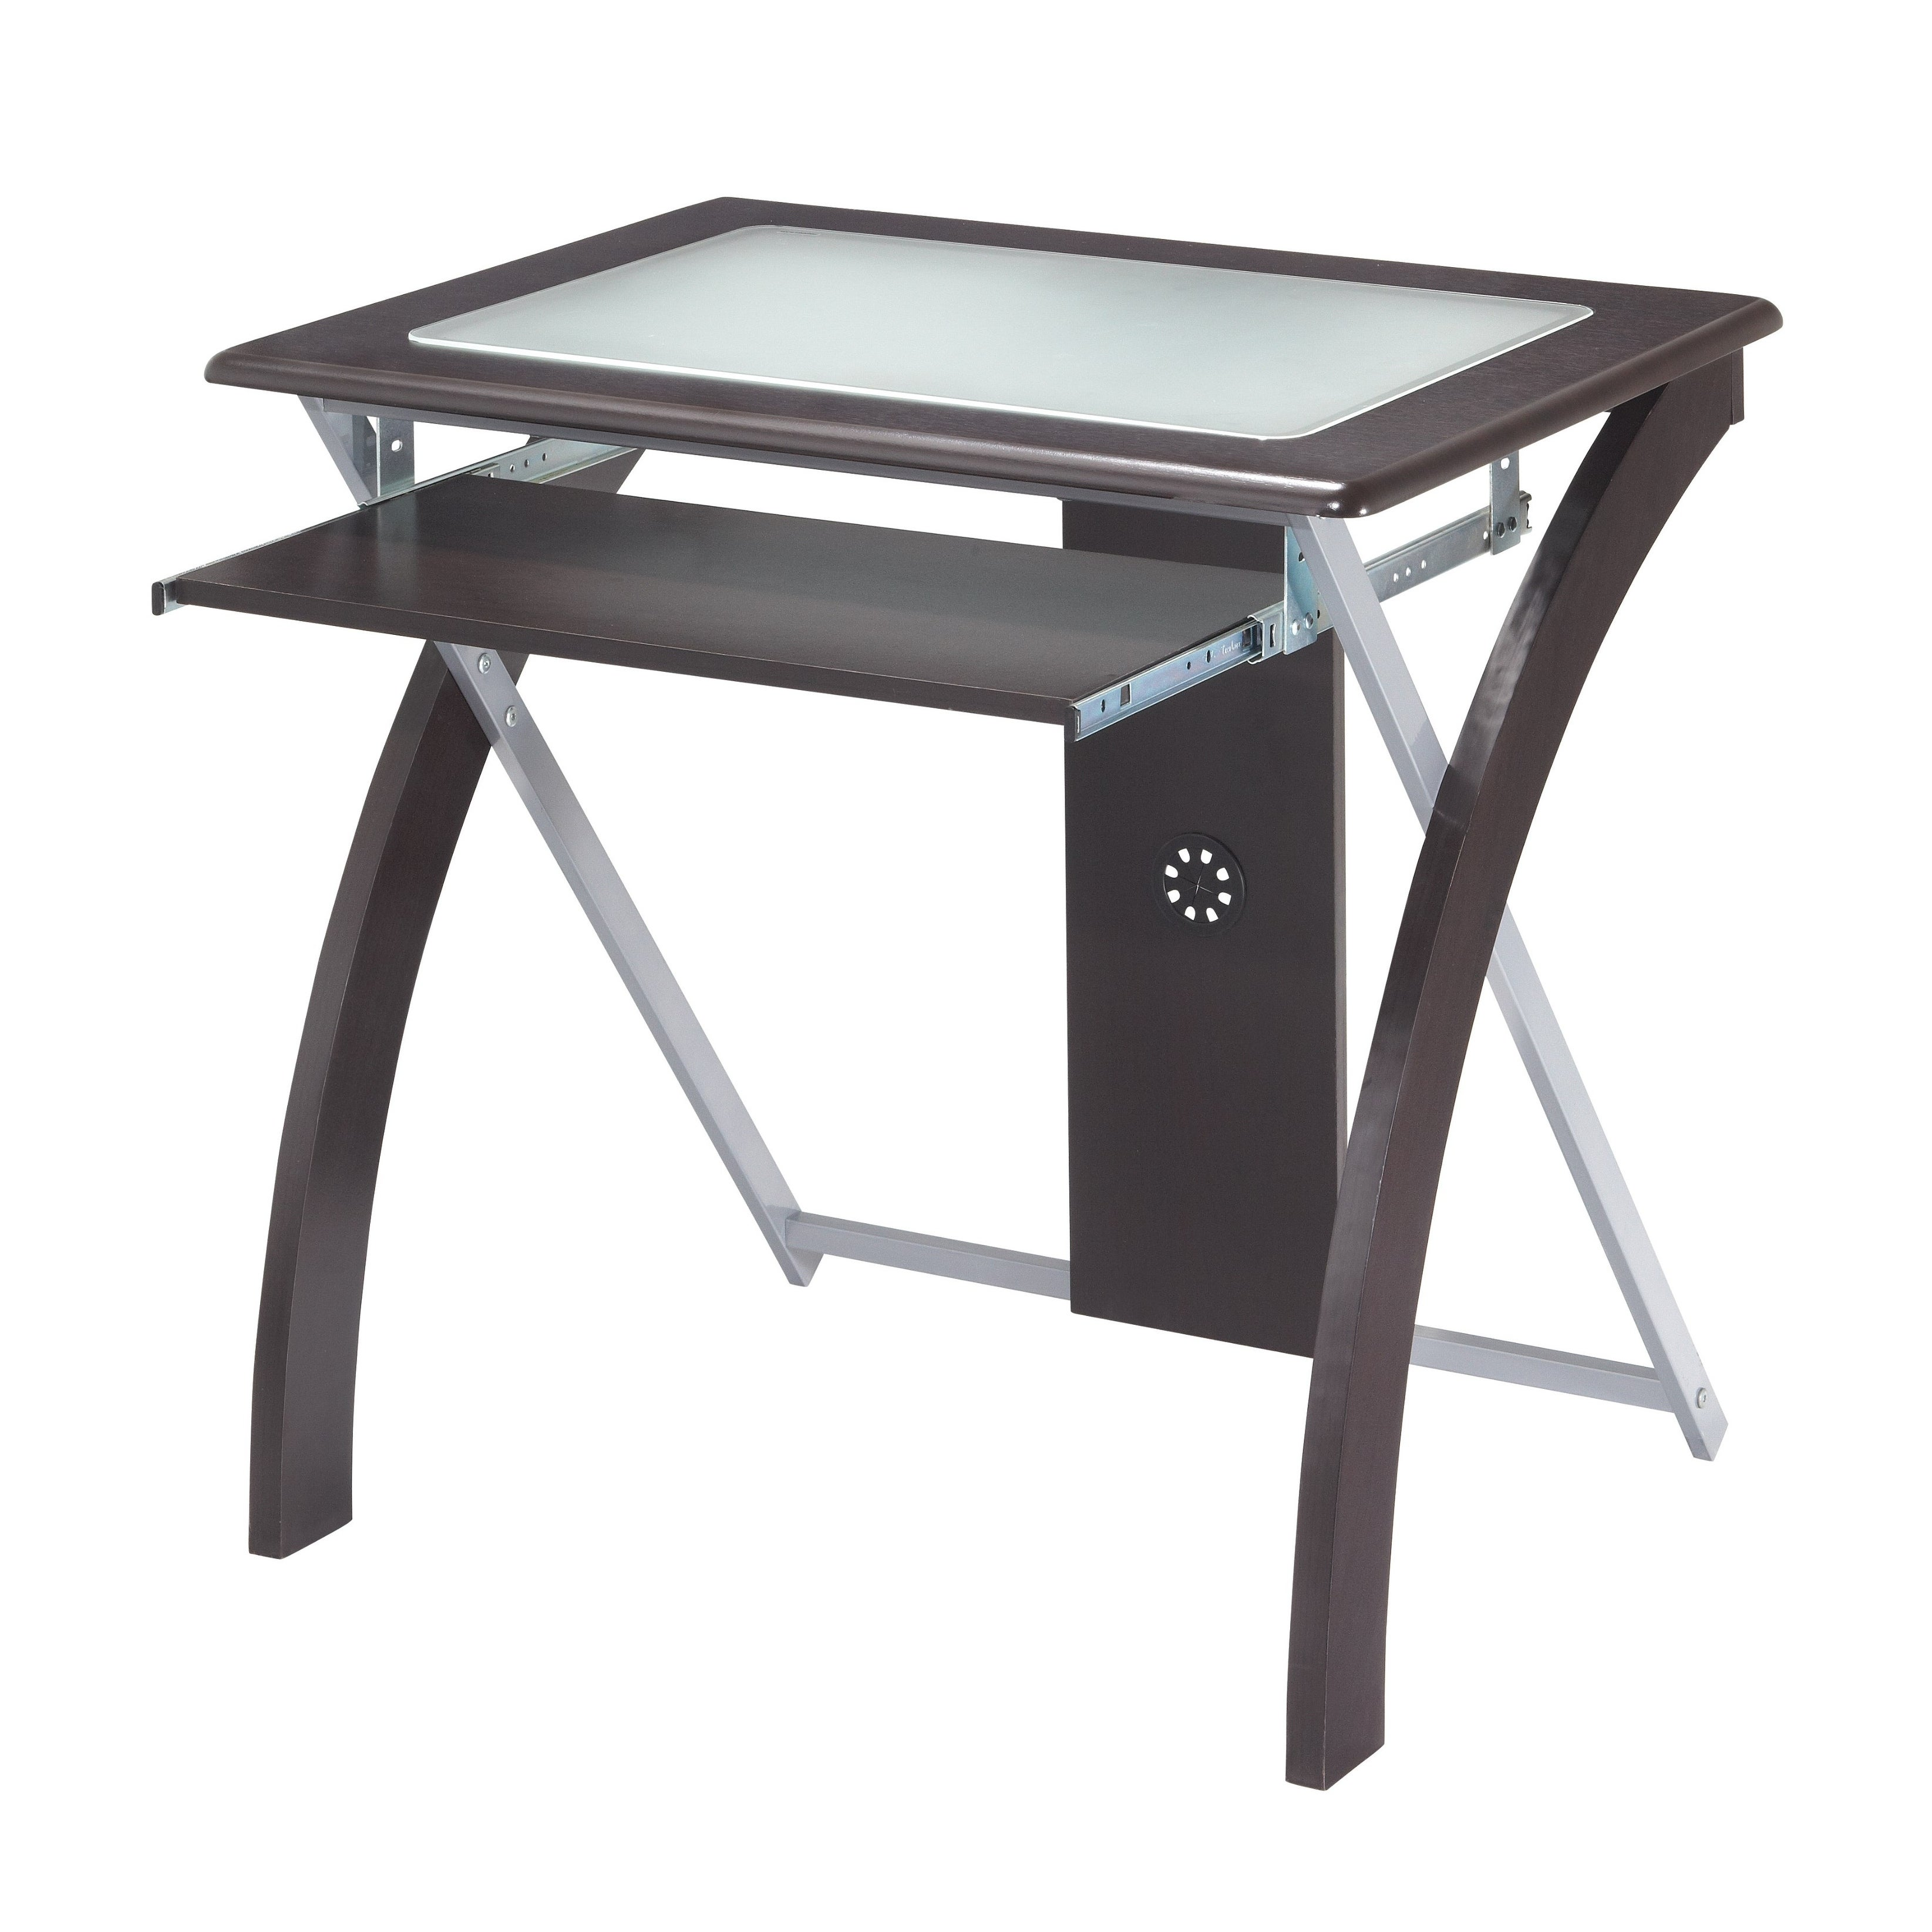 Osp Home Furnishings X Text Computer Desk With Frosted Glass Overstock 23592304